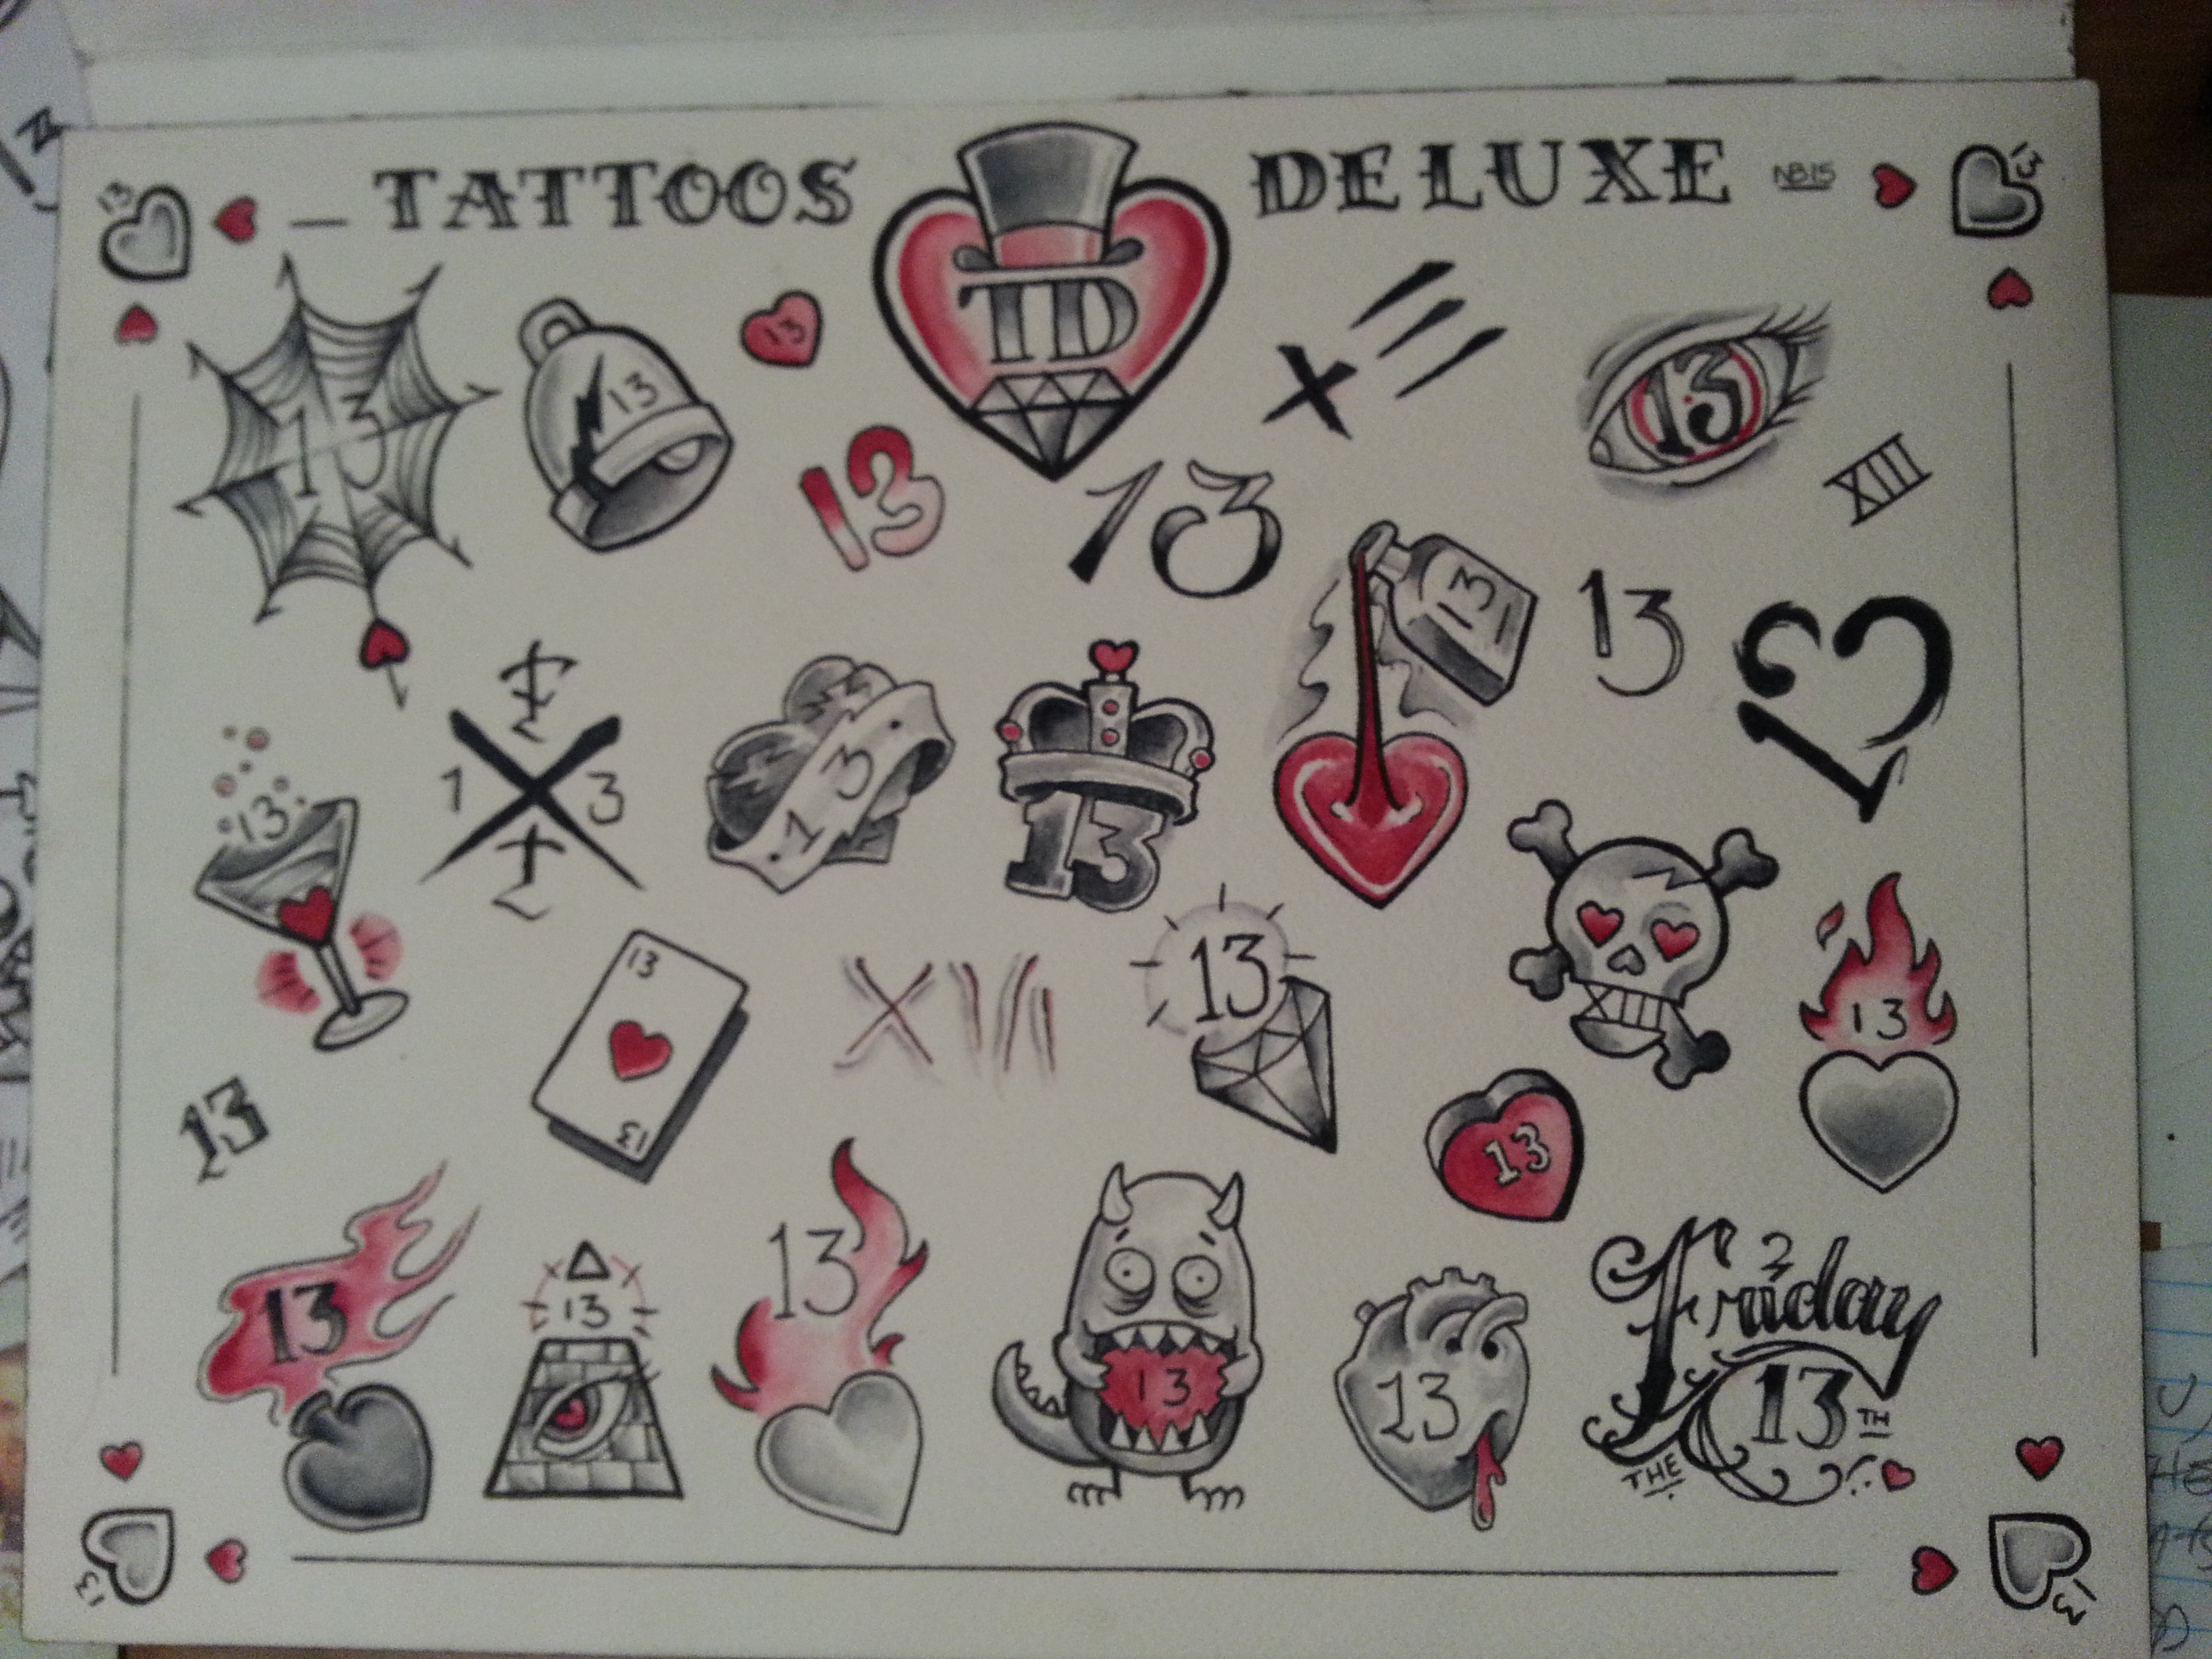 Friday The 13th Valentine S Edition Tattoo Event Greg James